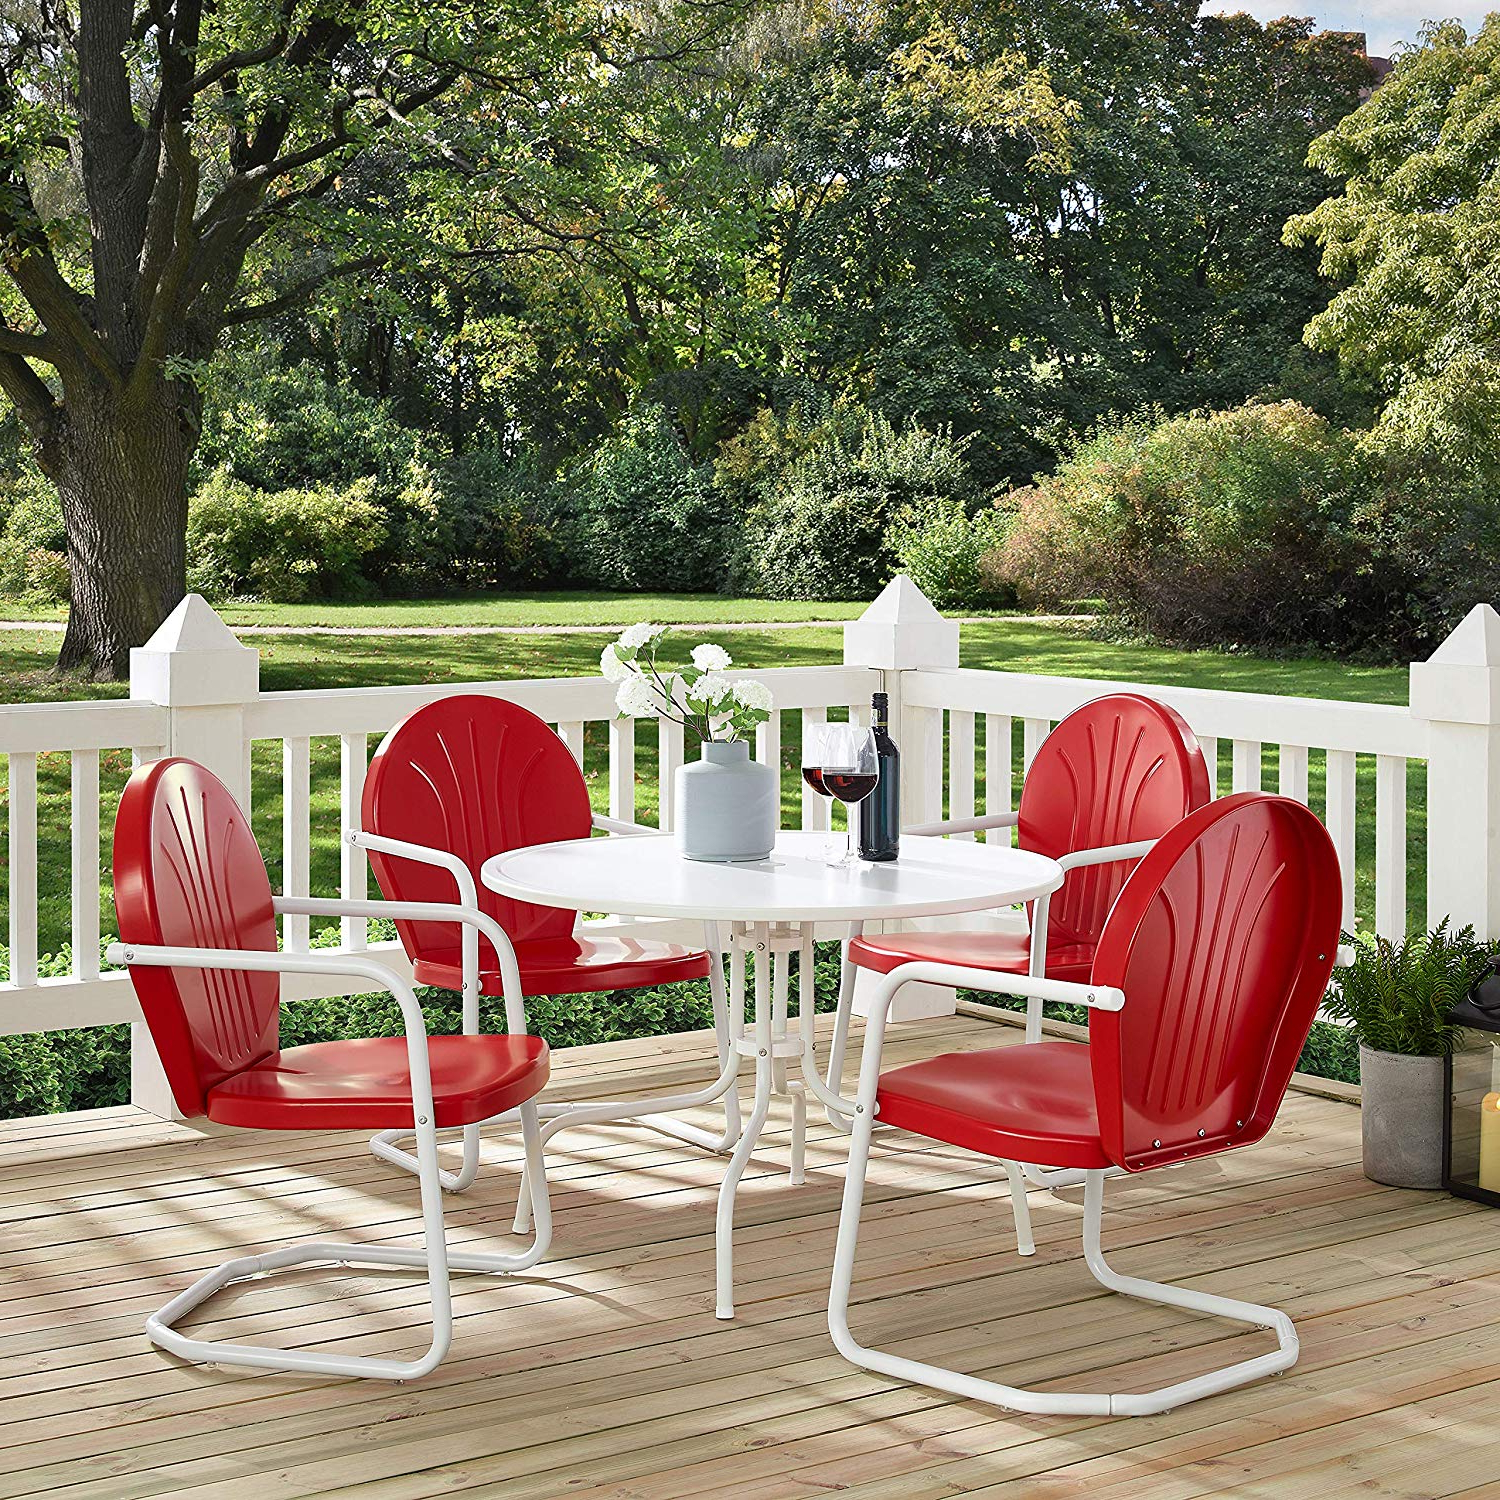 Crosley Furniture Griffith 5 Piece Metal Outdoor Dining Set With Table And  Chairs – Coral Red Regarding Widely Used Bate Red Retro 3 Piece Dining Sets (Gallery 20 of 20)